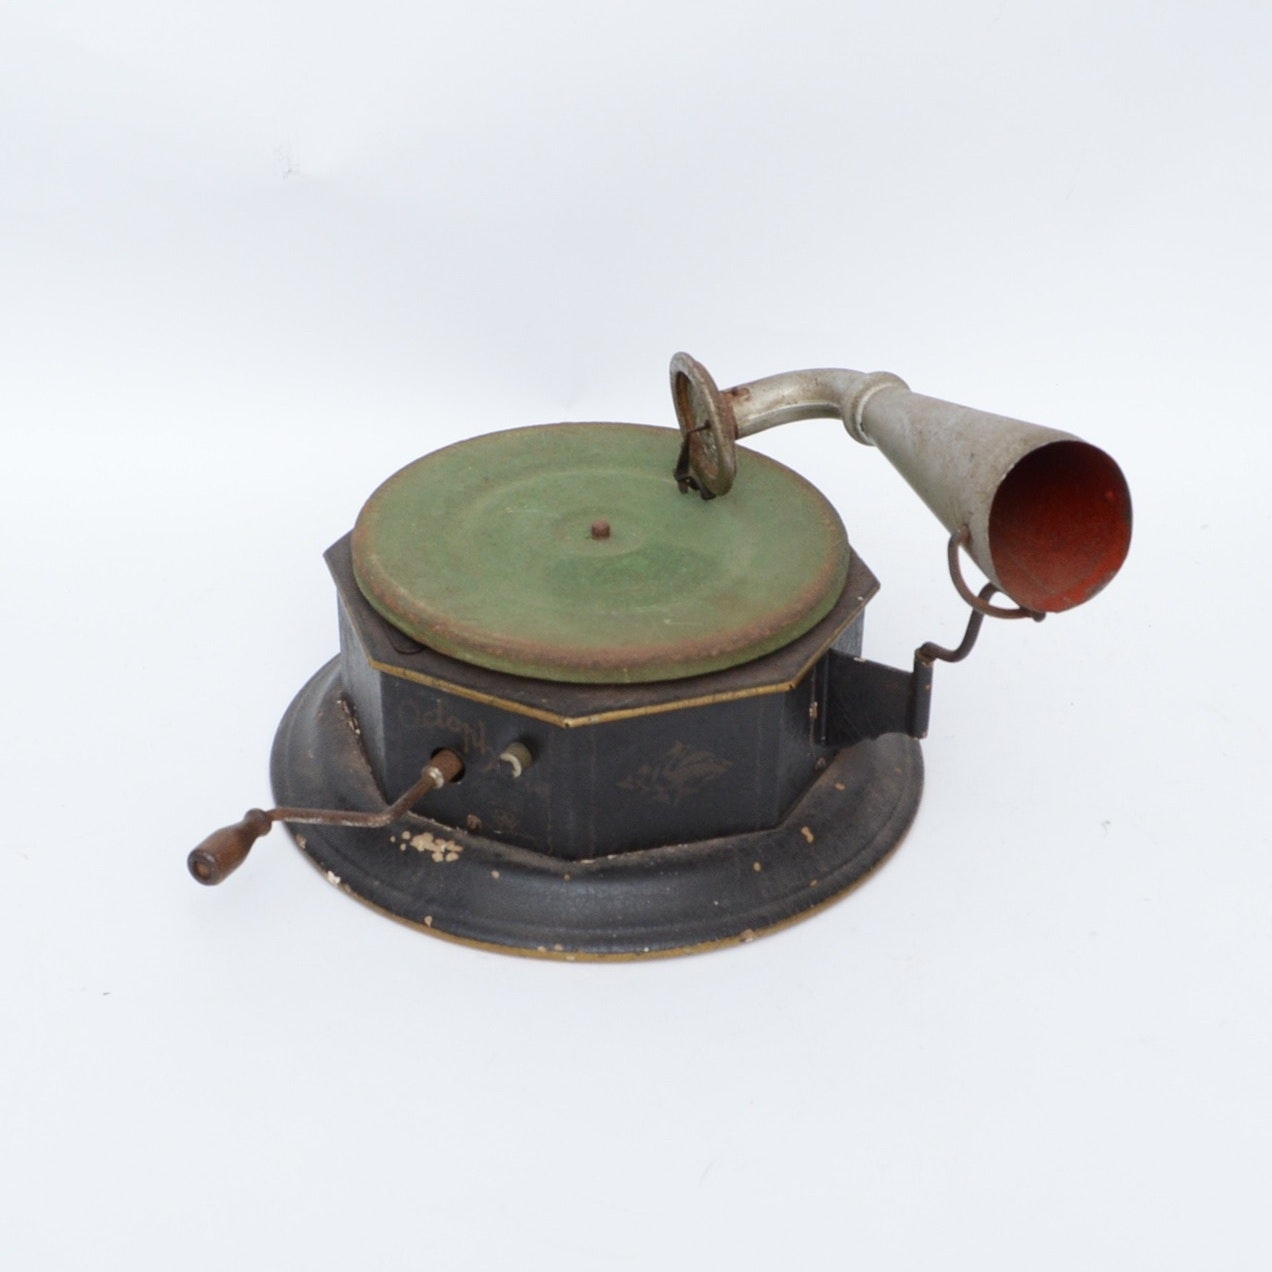 19th Century German Toy Octophone/Phonograph